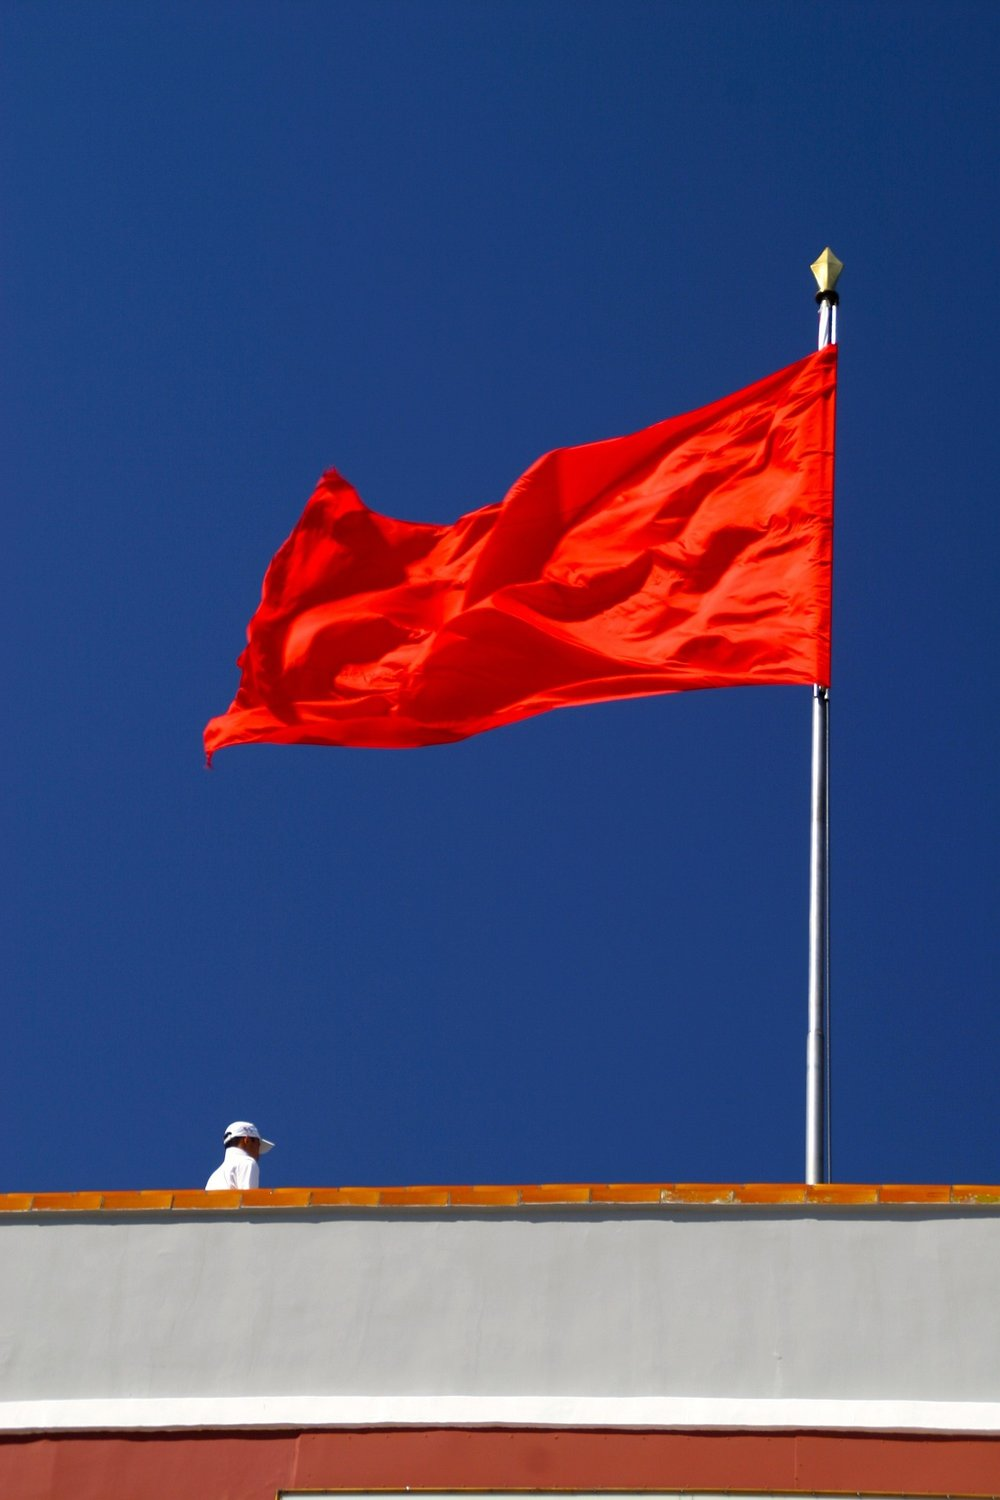 Red flags. Not just for Socialism.